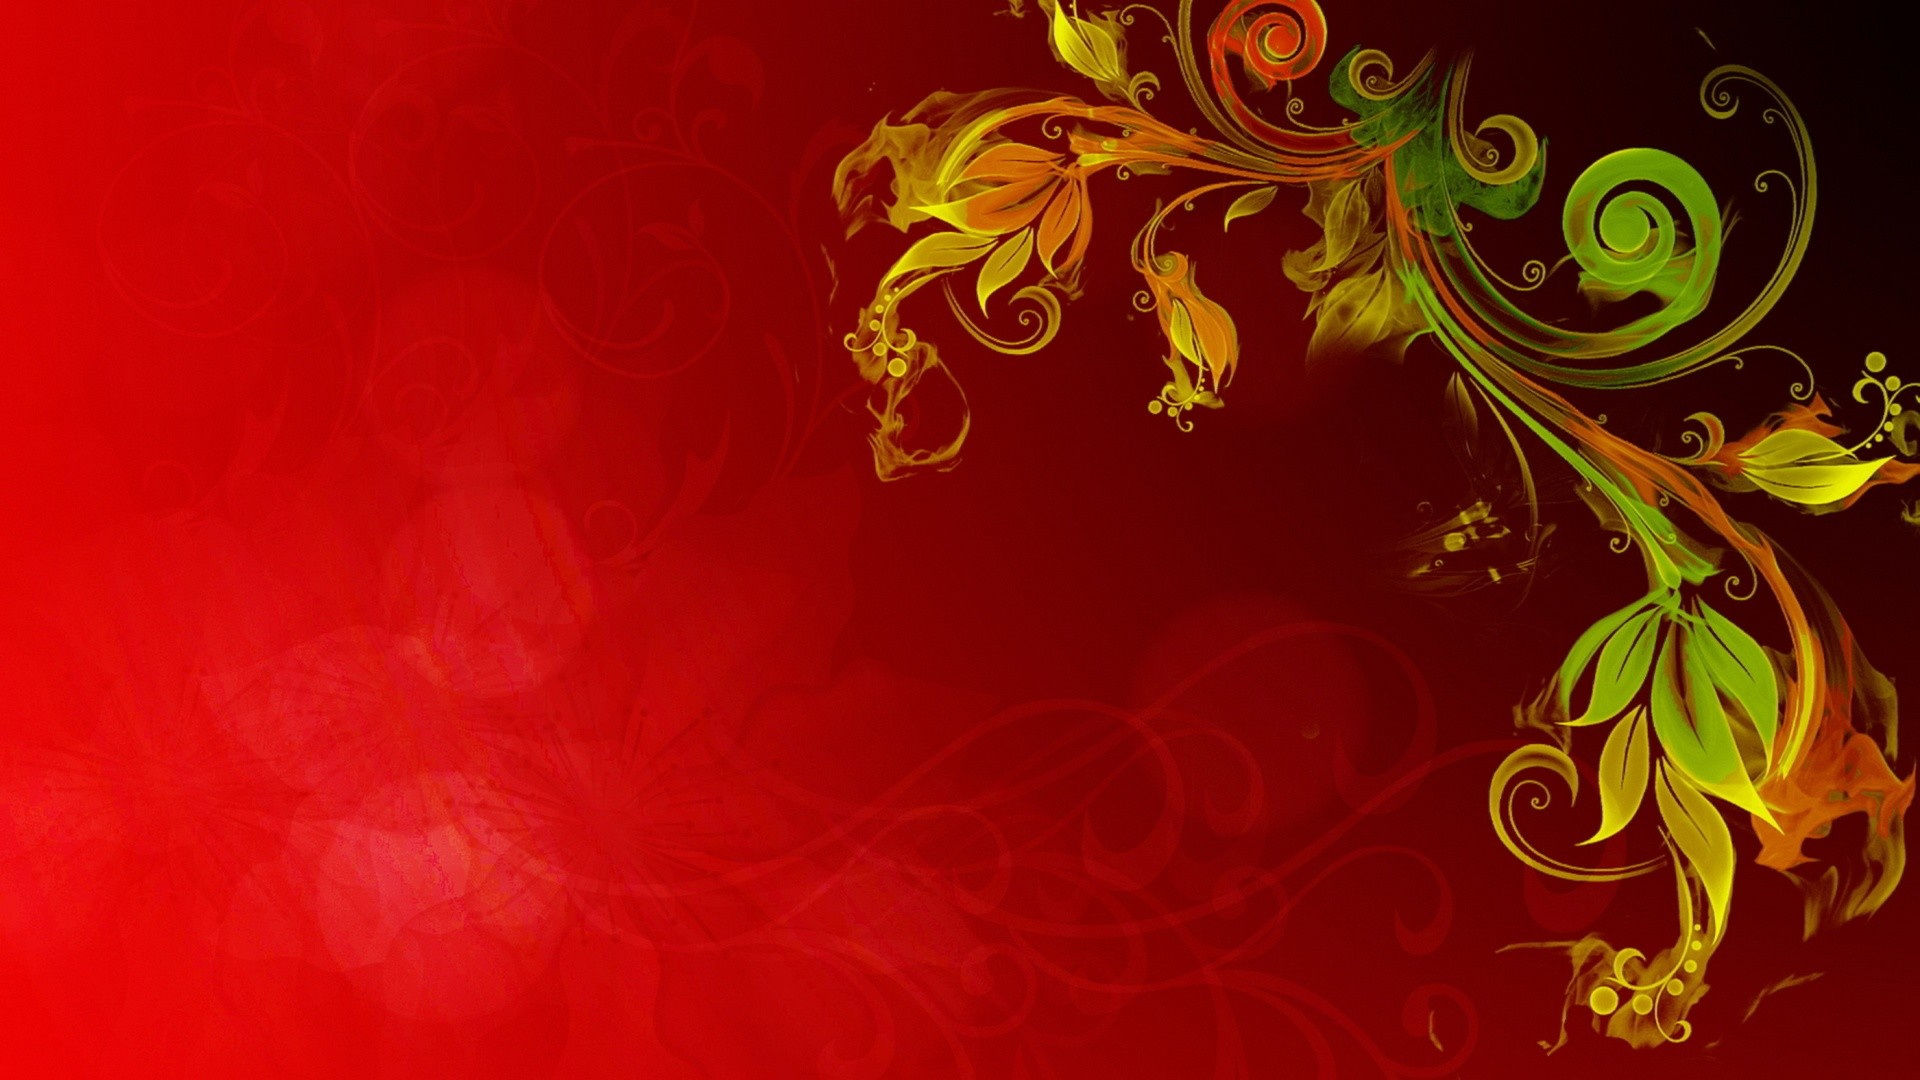 Red Background Stock Footage Video | Shutterstock